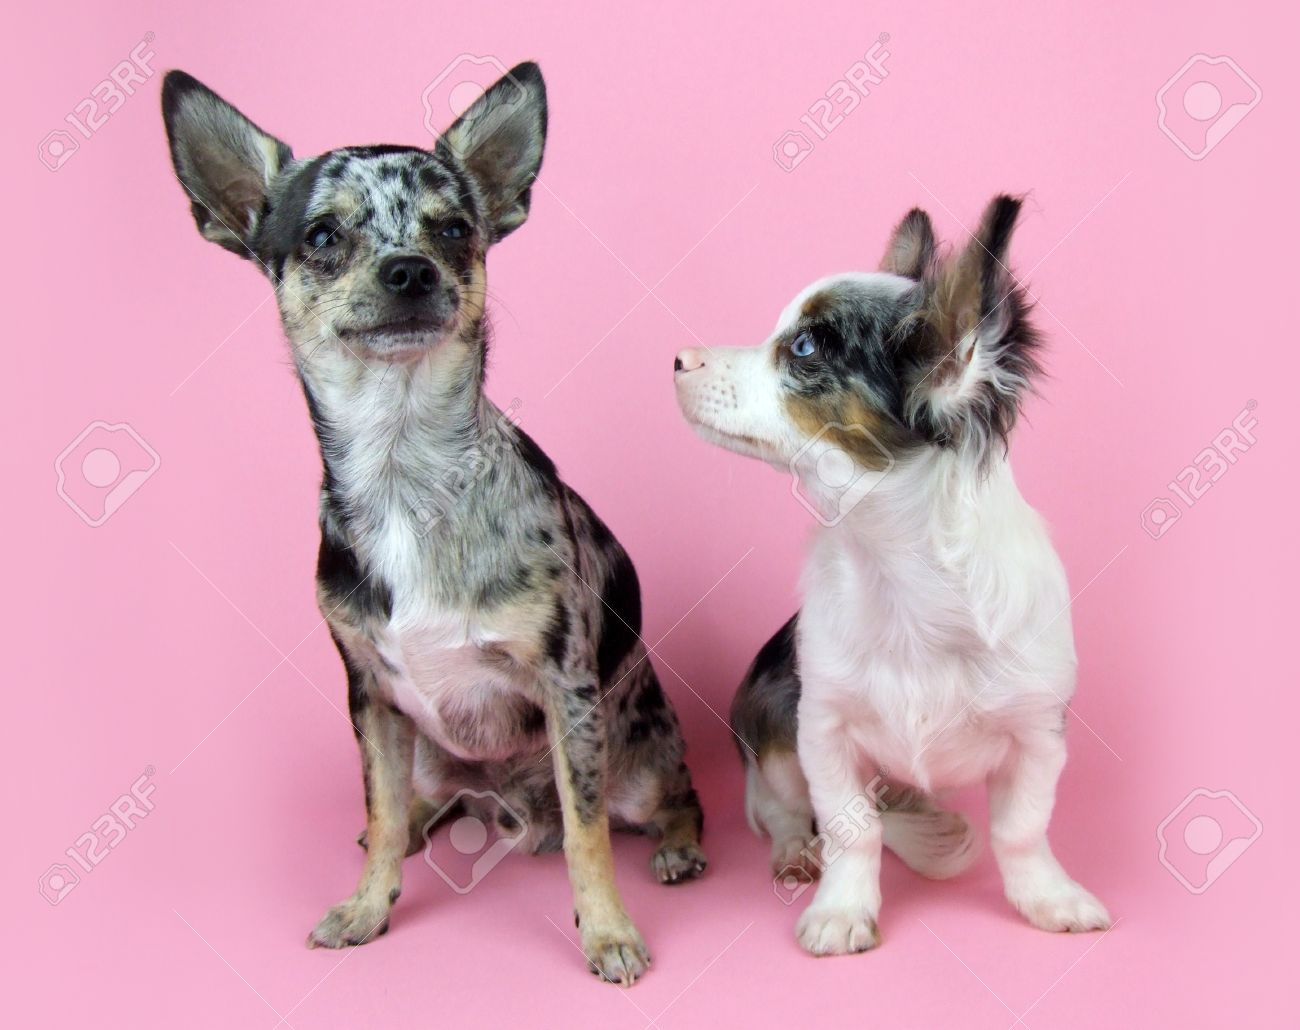 Blue Merle Chihuahua S On Pink Stock Photo Picture And Royalty Free